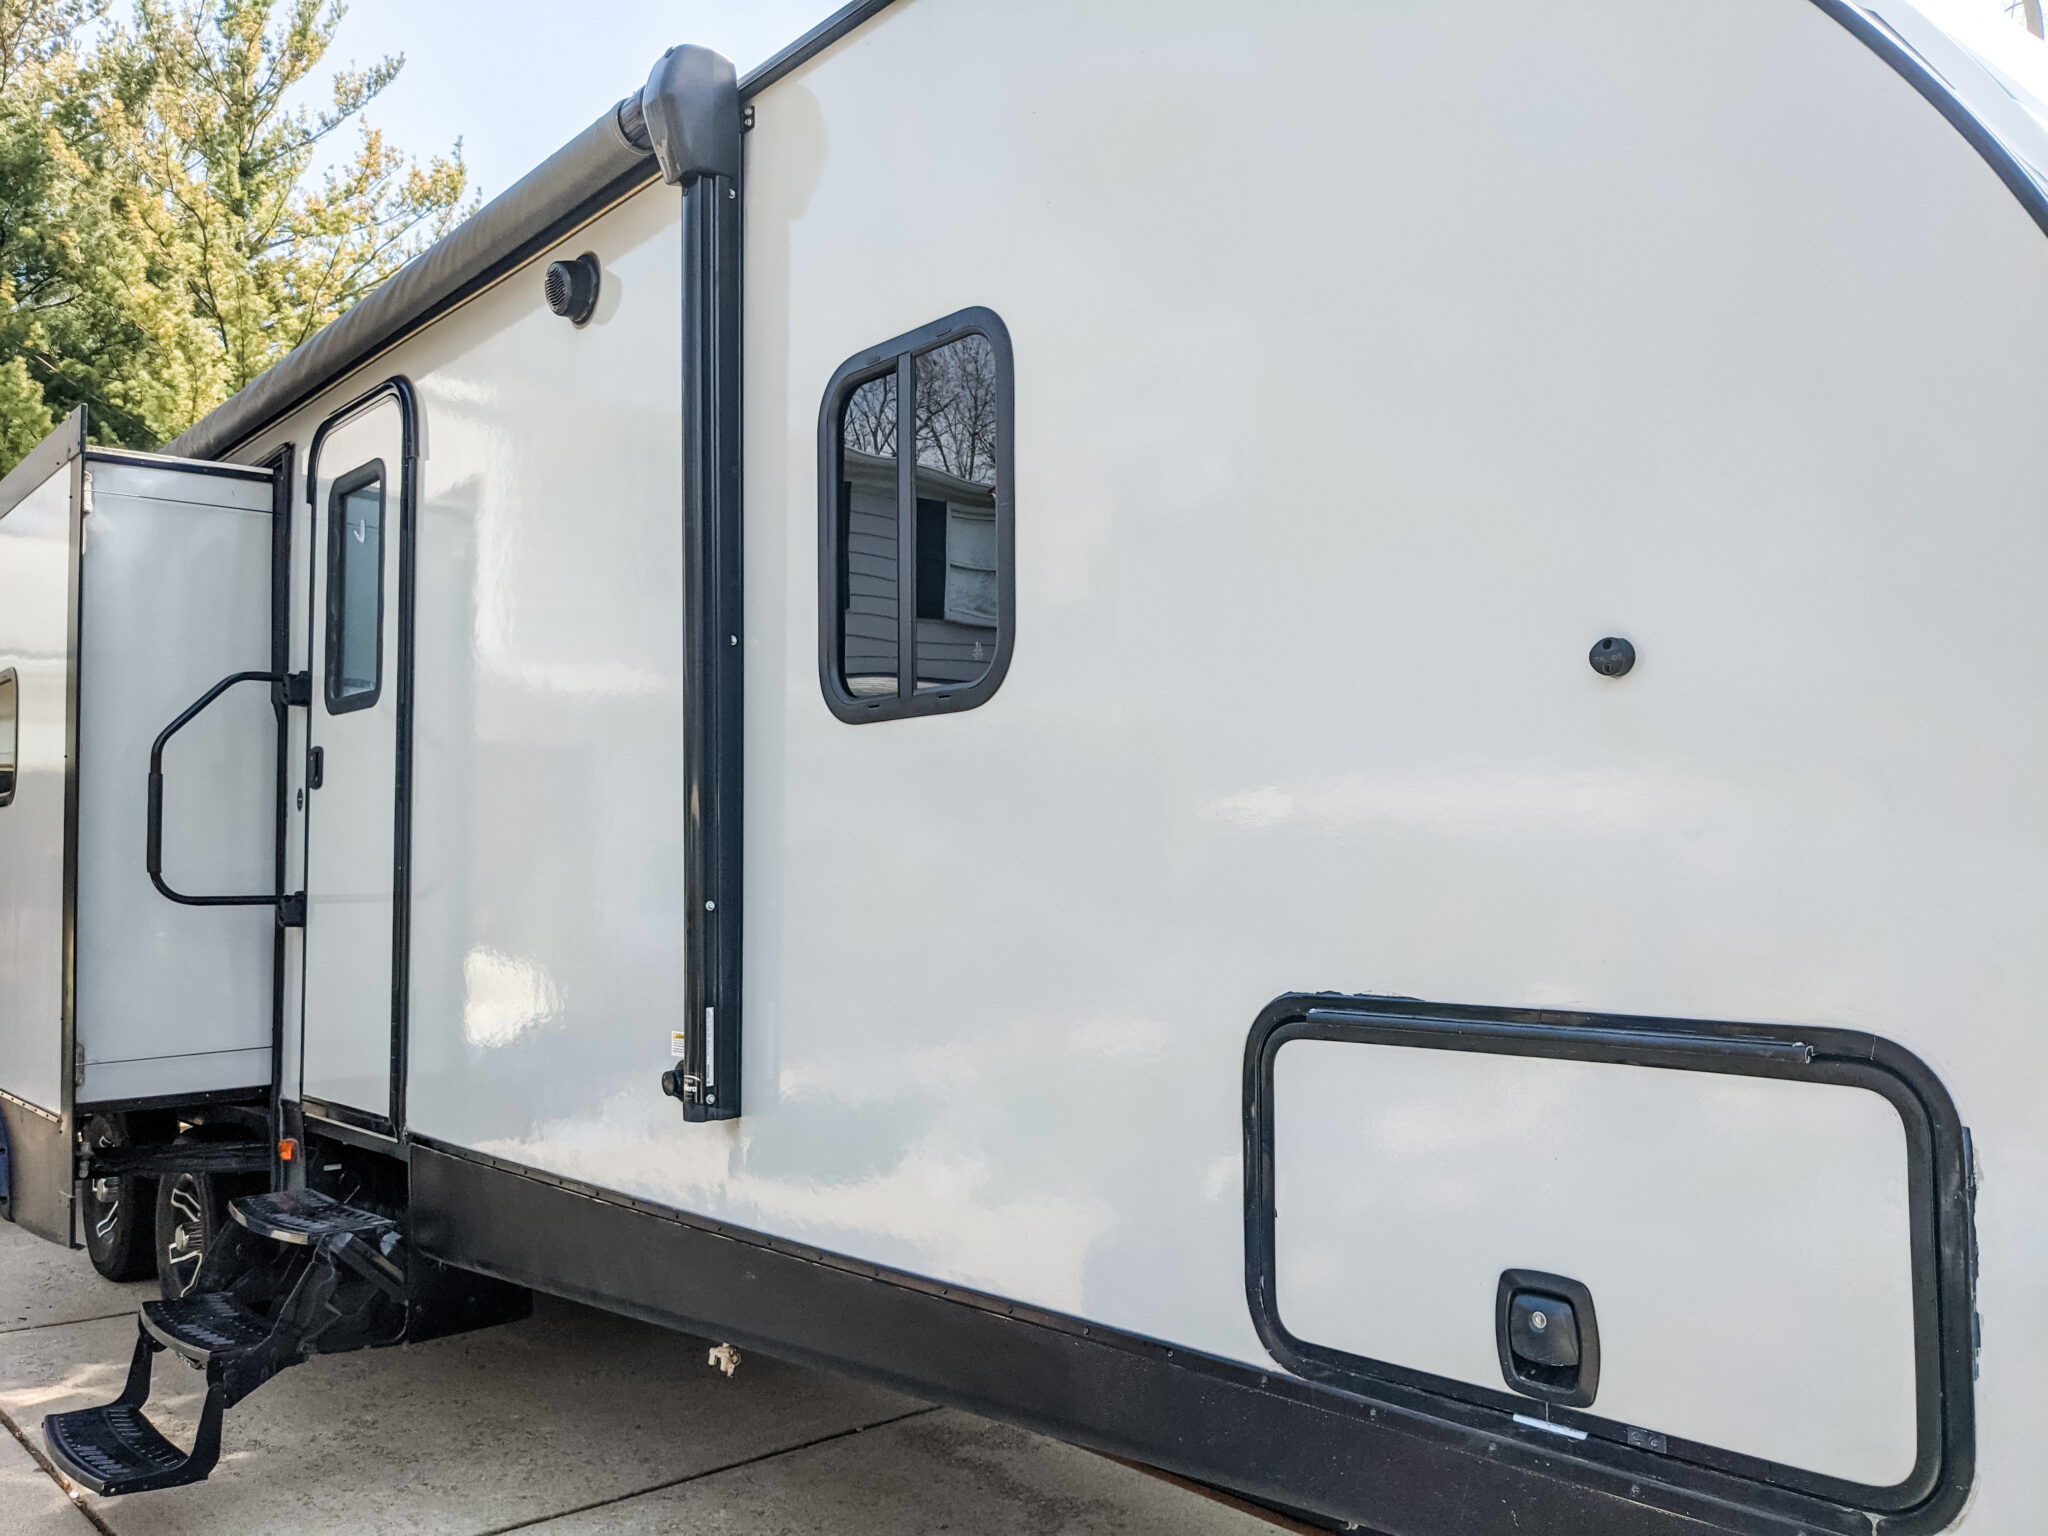 Remodeled 2019 Keystone Bullet 330BHS Travel Trailer for Sale All Things with Purpose Sarah Lemp 9